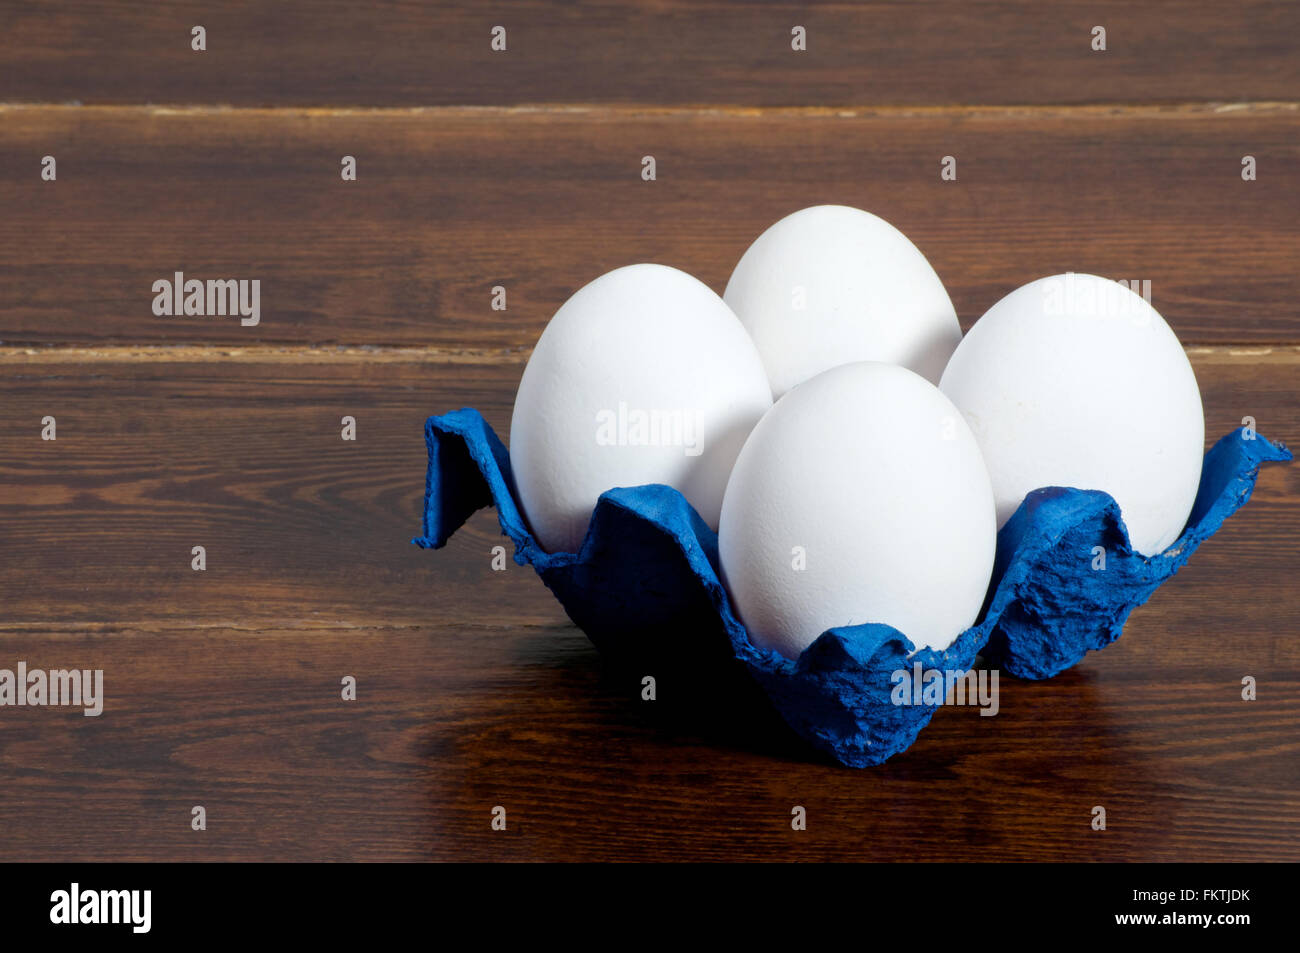 White eggs in navy blue container over wooden background side view - Stock Image